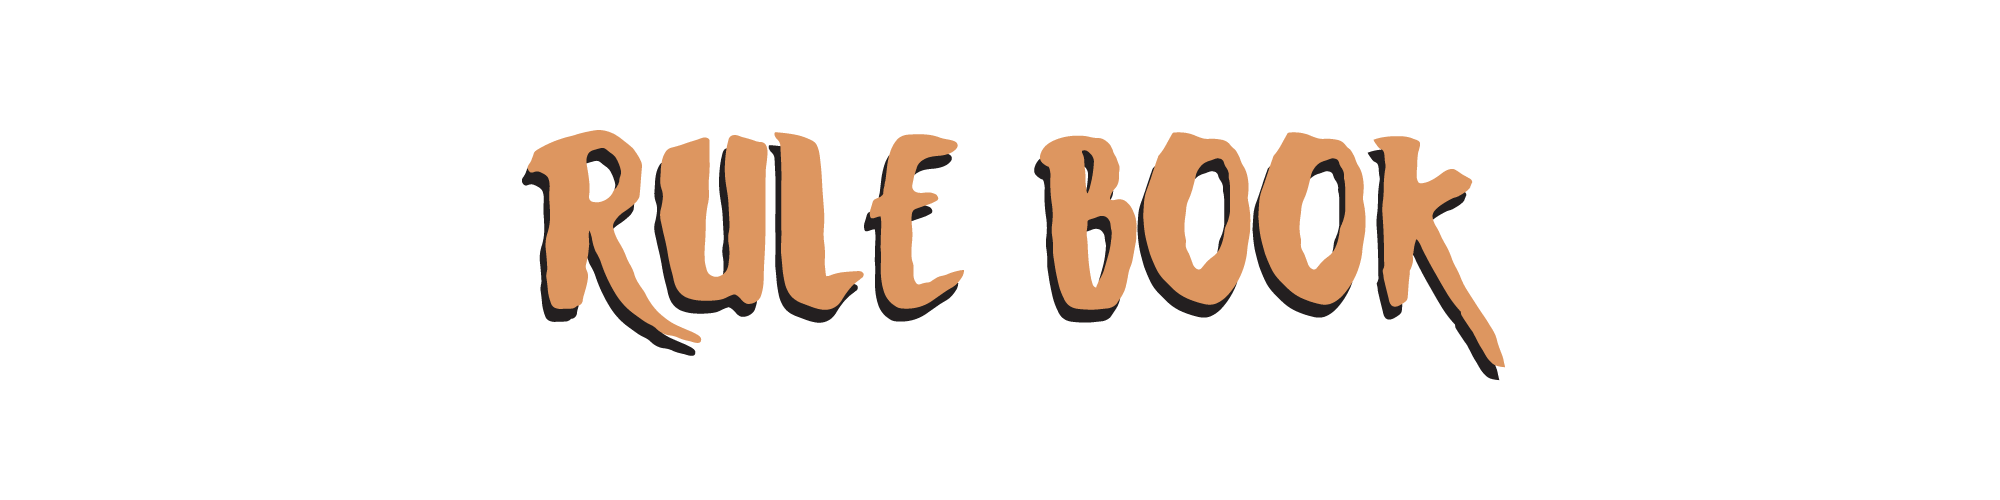 RULEBOOK-BANNER-LOOPY-BEACH.png